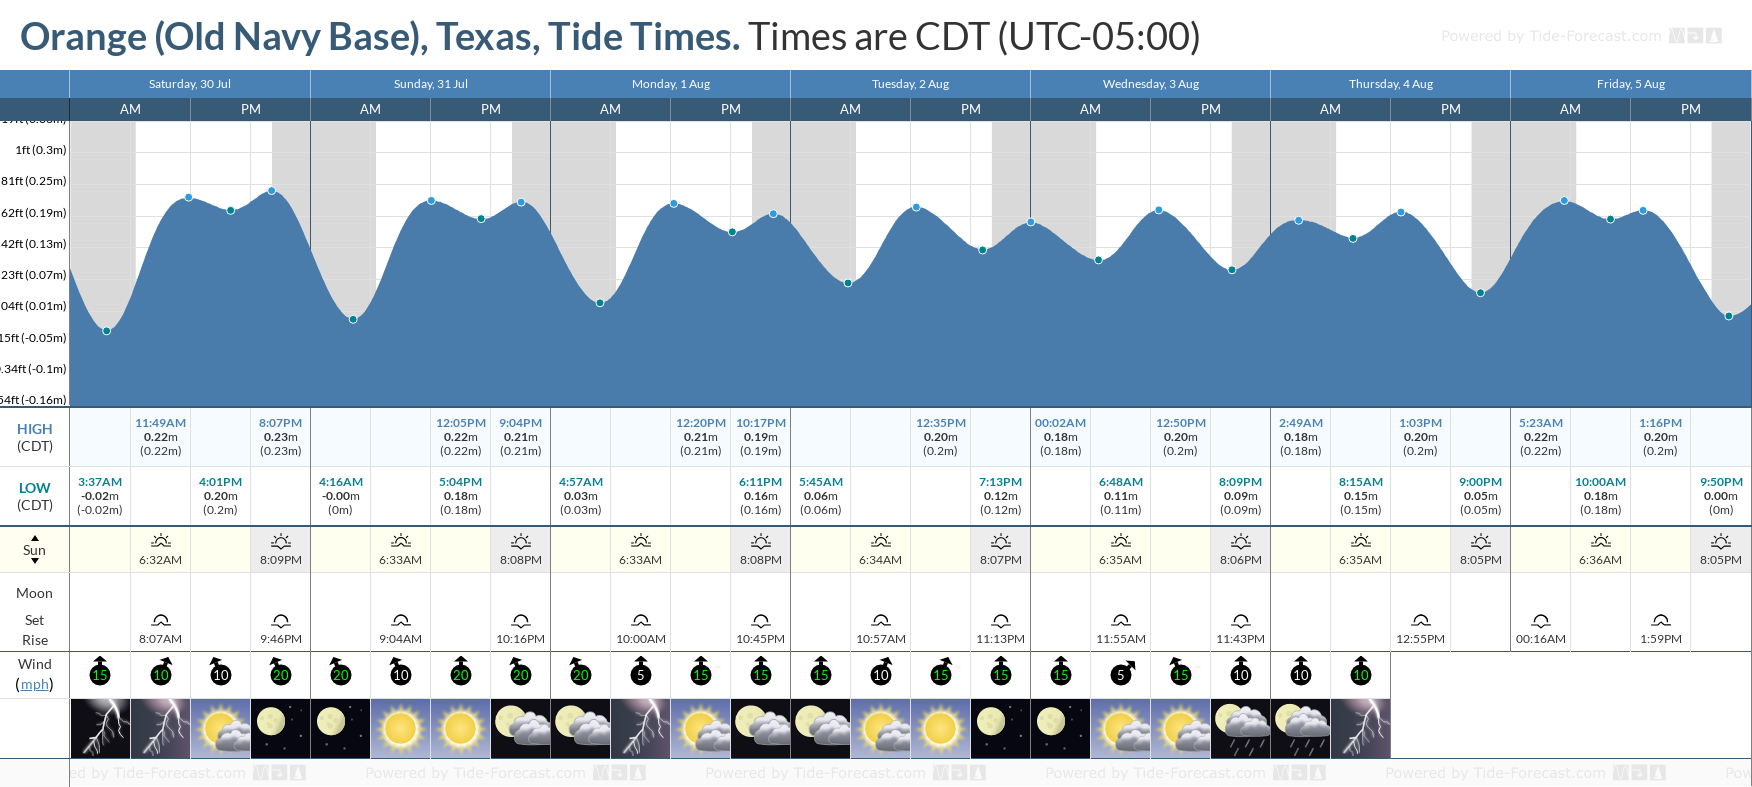 Orange (Old Navy Base), Texas Tide Chart including high and low tide tide times for the next 7 days